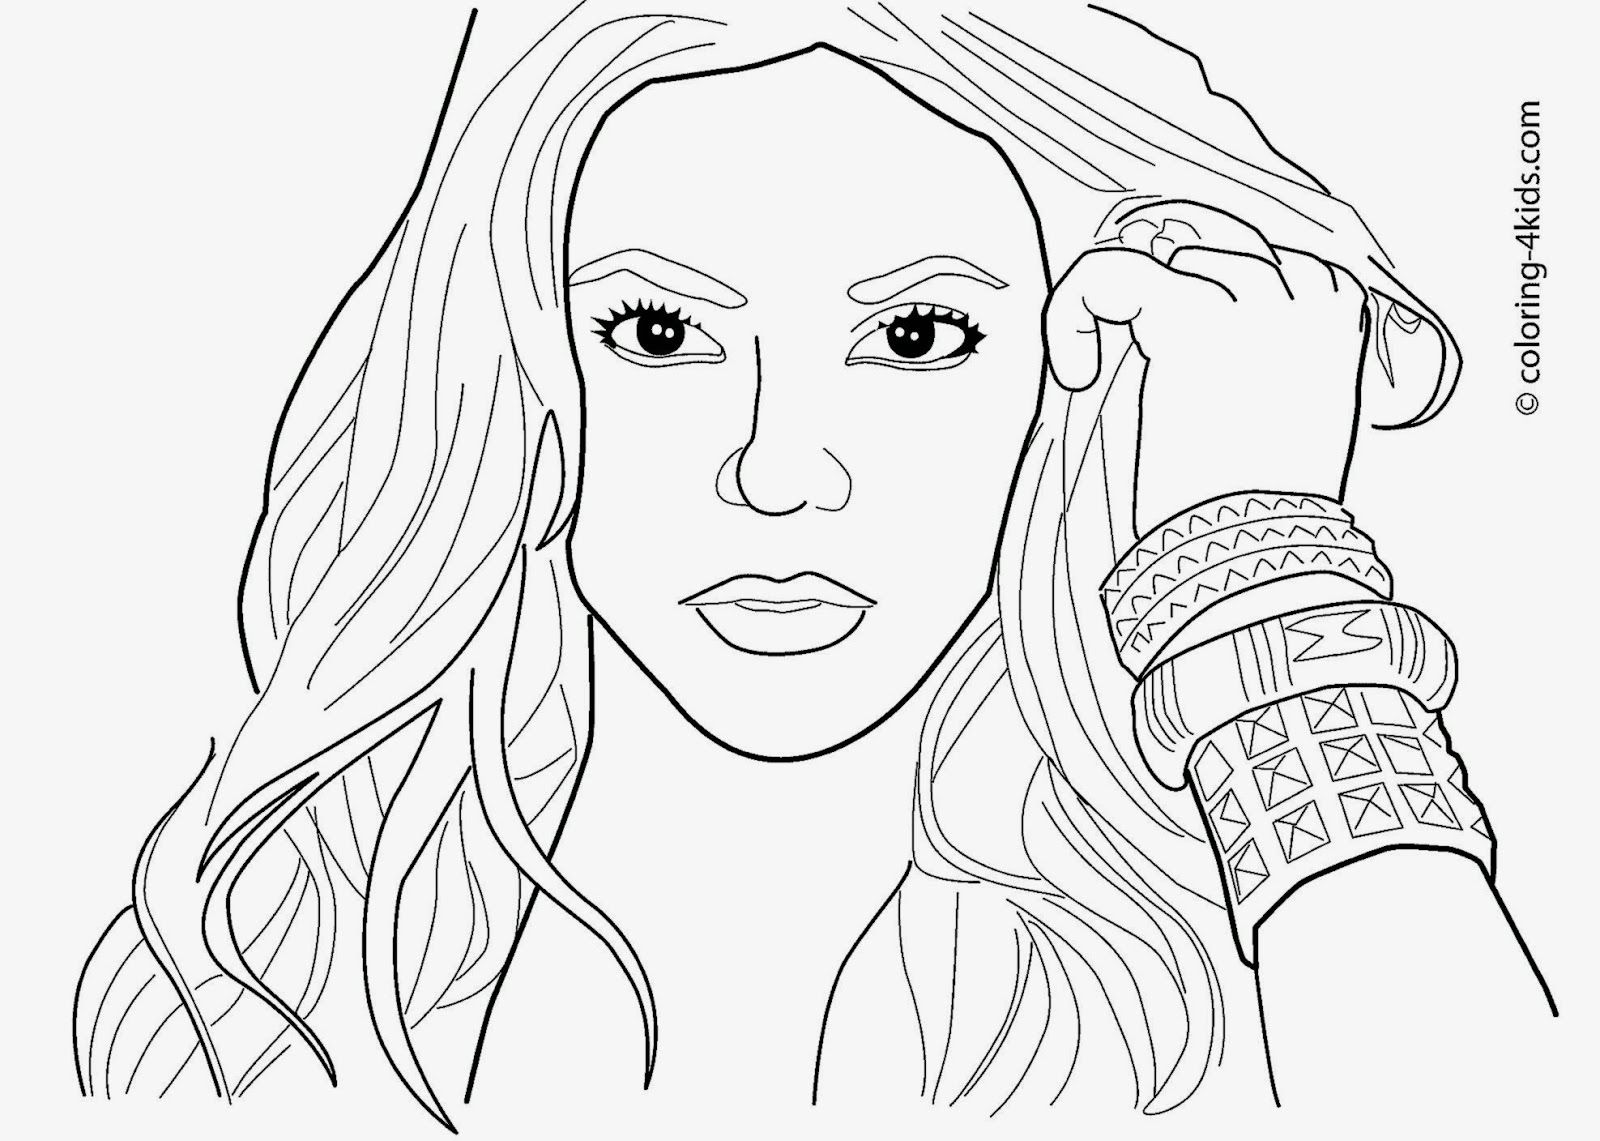 nicki minaj coloring pages for kids | Celebrity Coloring Pages | Free Coloring Pages | Mermaid ...